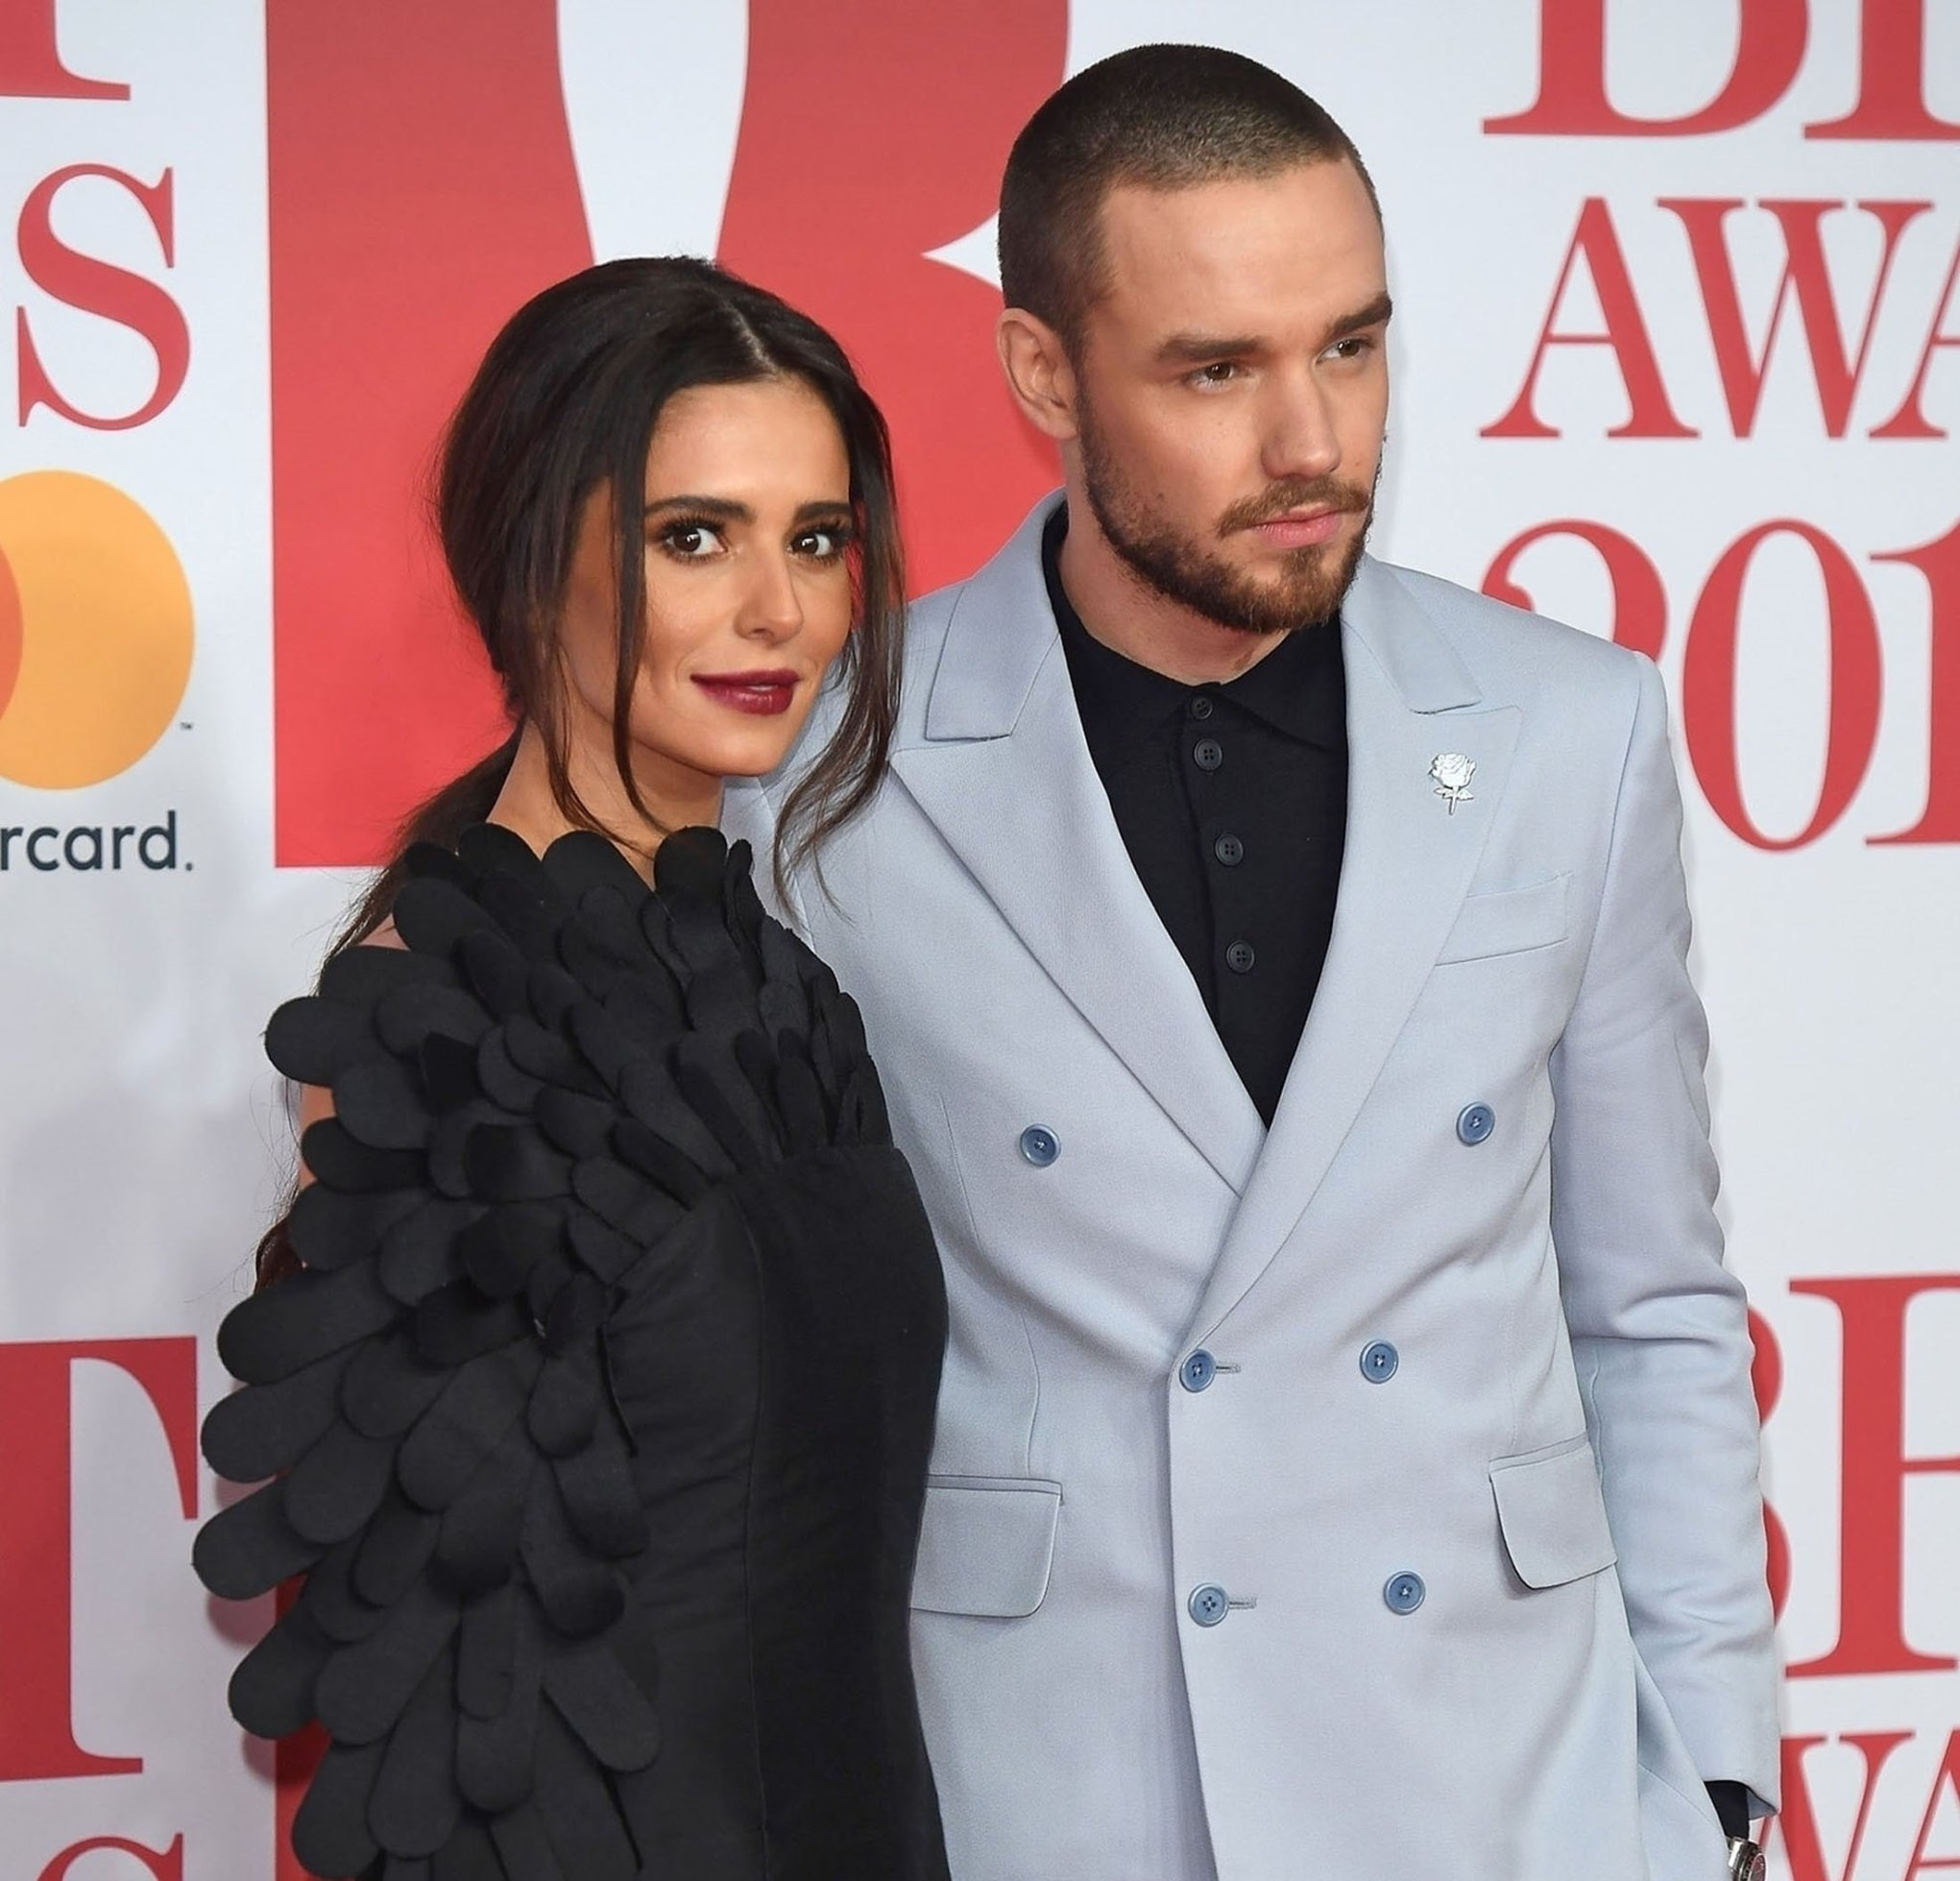 BGUK_1150824 - London, UNITED KINGDOM  - Cheryl and Liam Payne attend the 2018 Brit Awards. Cheryl held a single white rose as a sign of affection from Liam despite reports of the couple's relationship on the rocks.  Pictured: Cheryl and Liam Payne  BACKGRID UK 22 FEBRUARY 2018, Image: 364011246, License: Rights-managed, Restrictions: , Model Release: no, Credit line: Profimedia, Backgrid UK